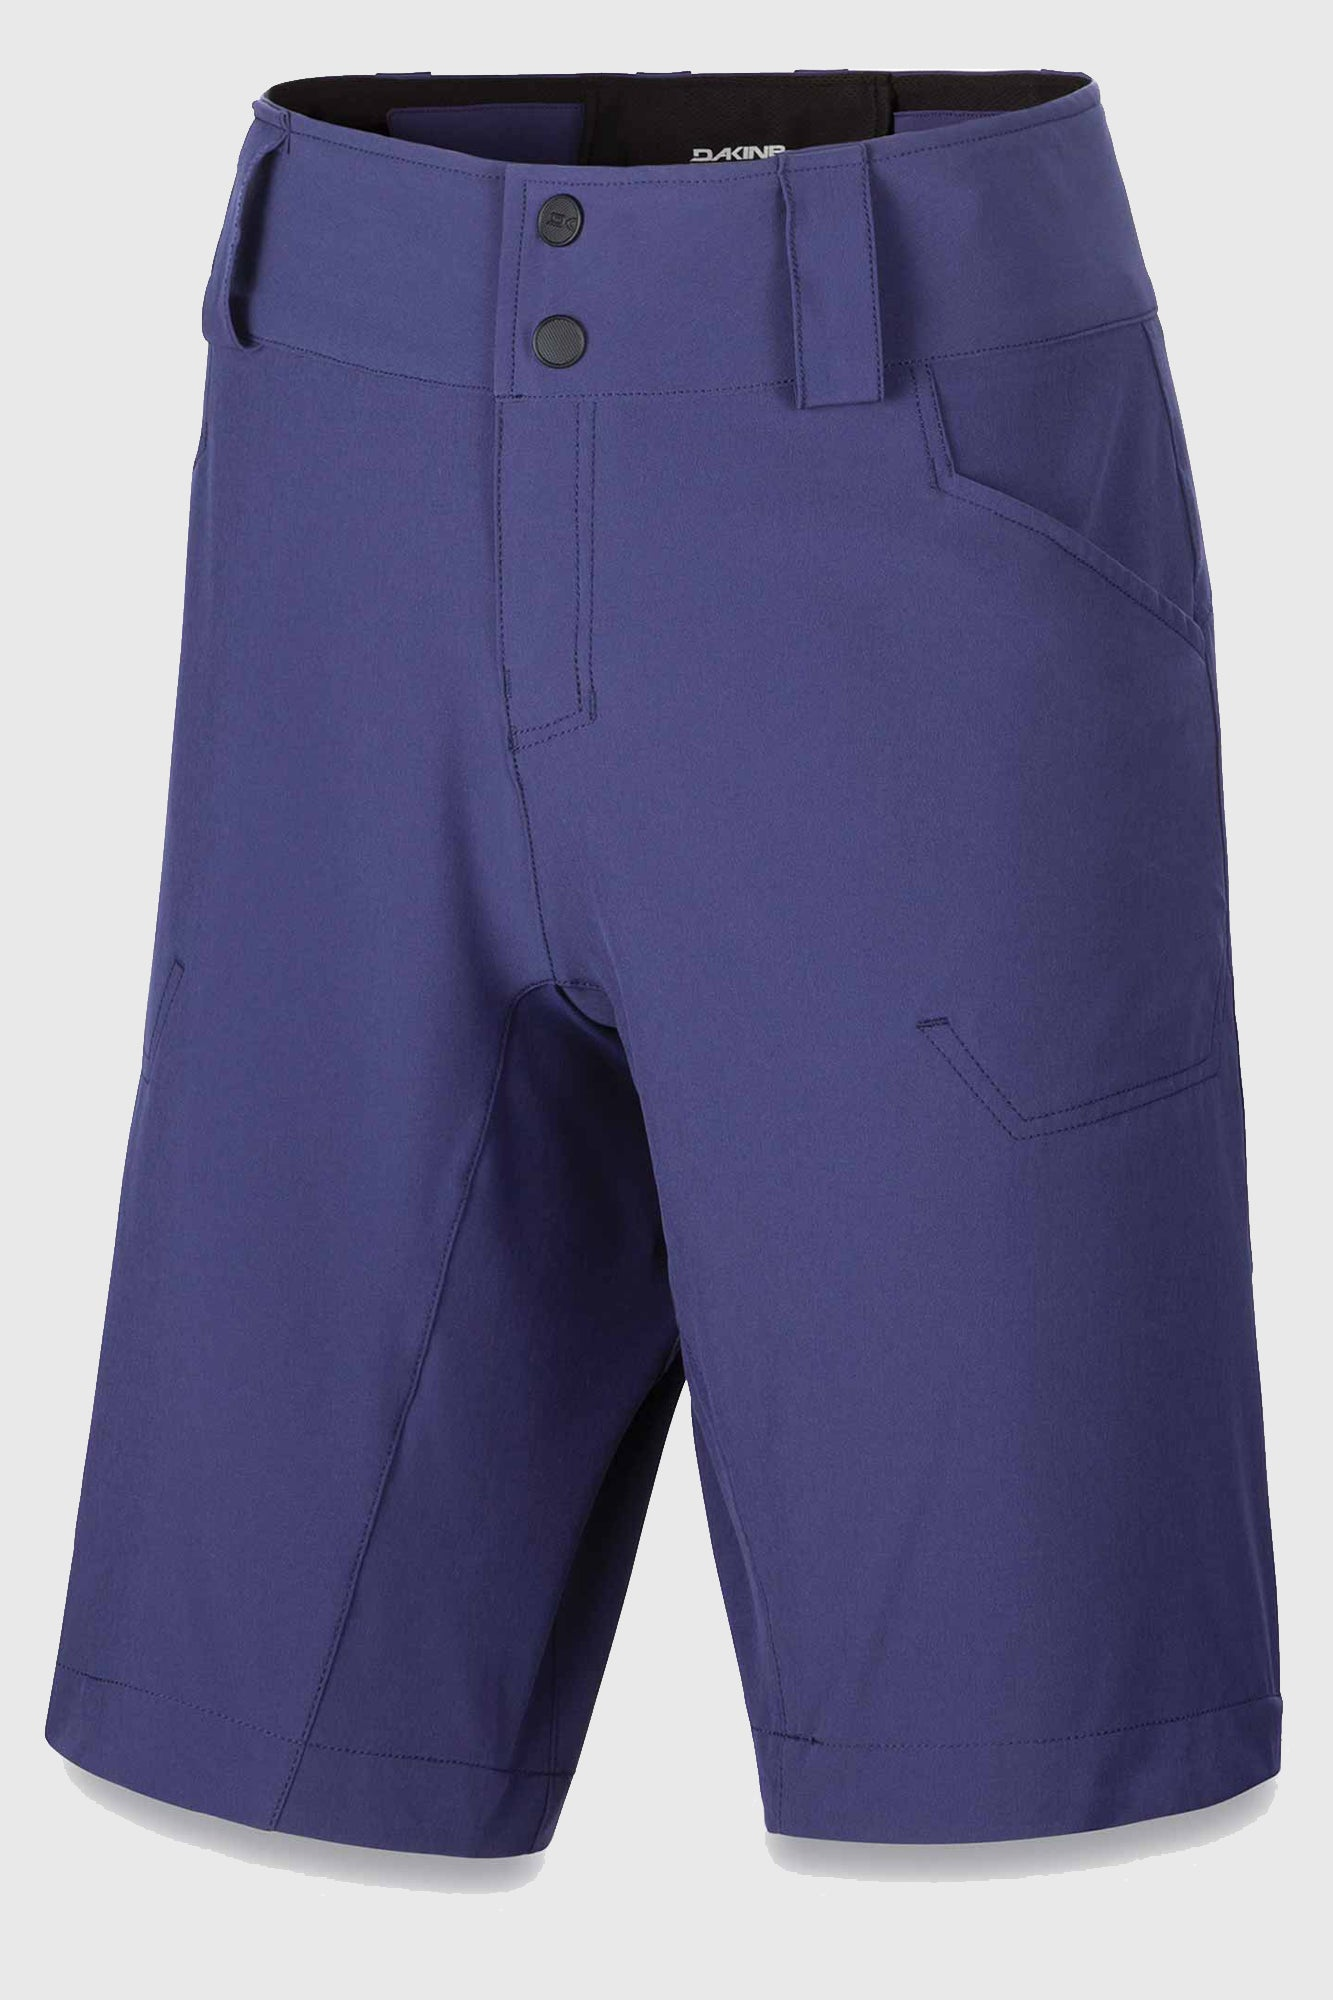 Cadence Women's Short Crown Blue